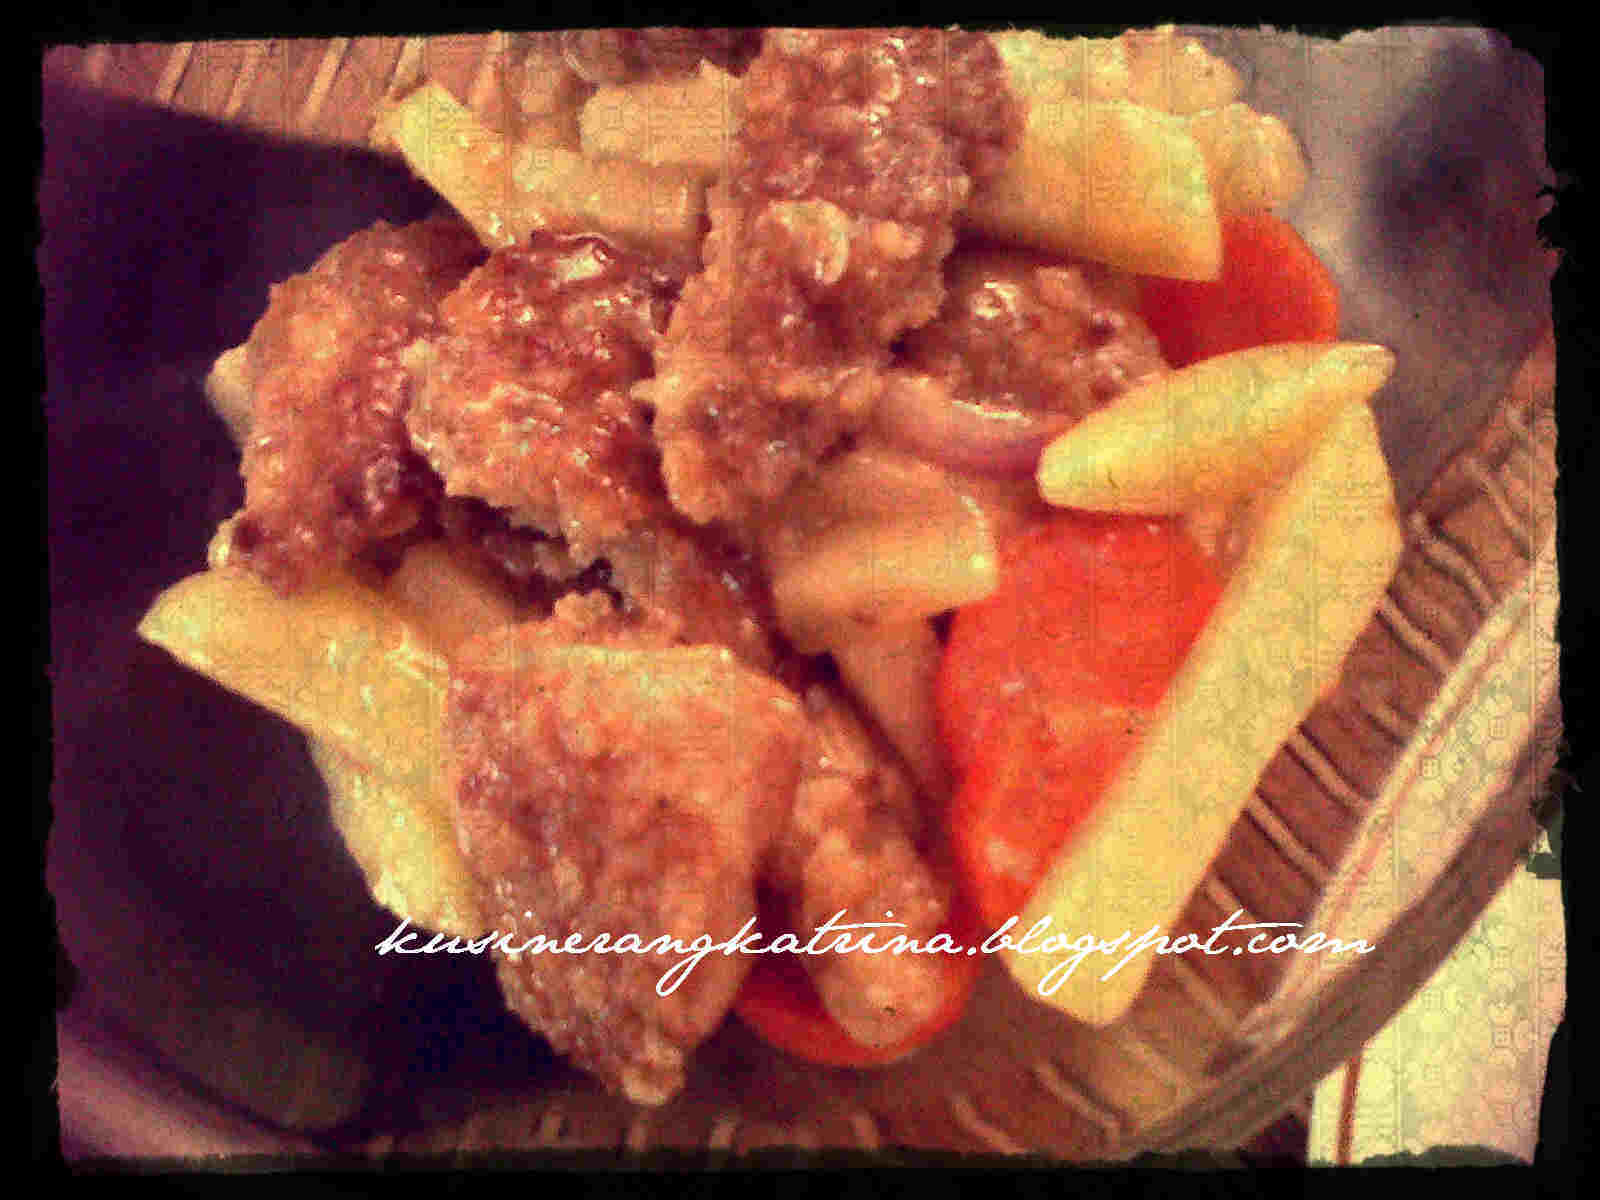 Pineapple Chicken with Carrots and Potatoes